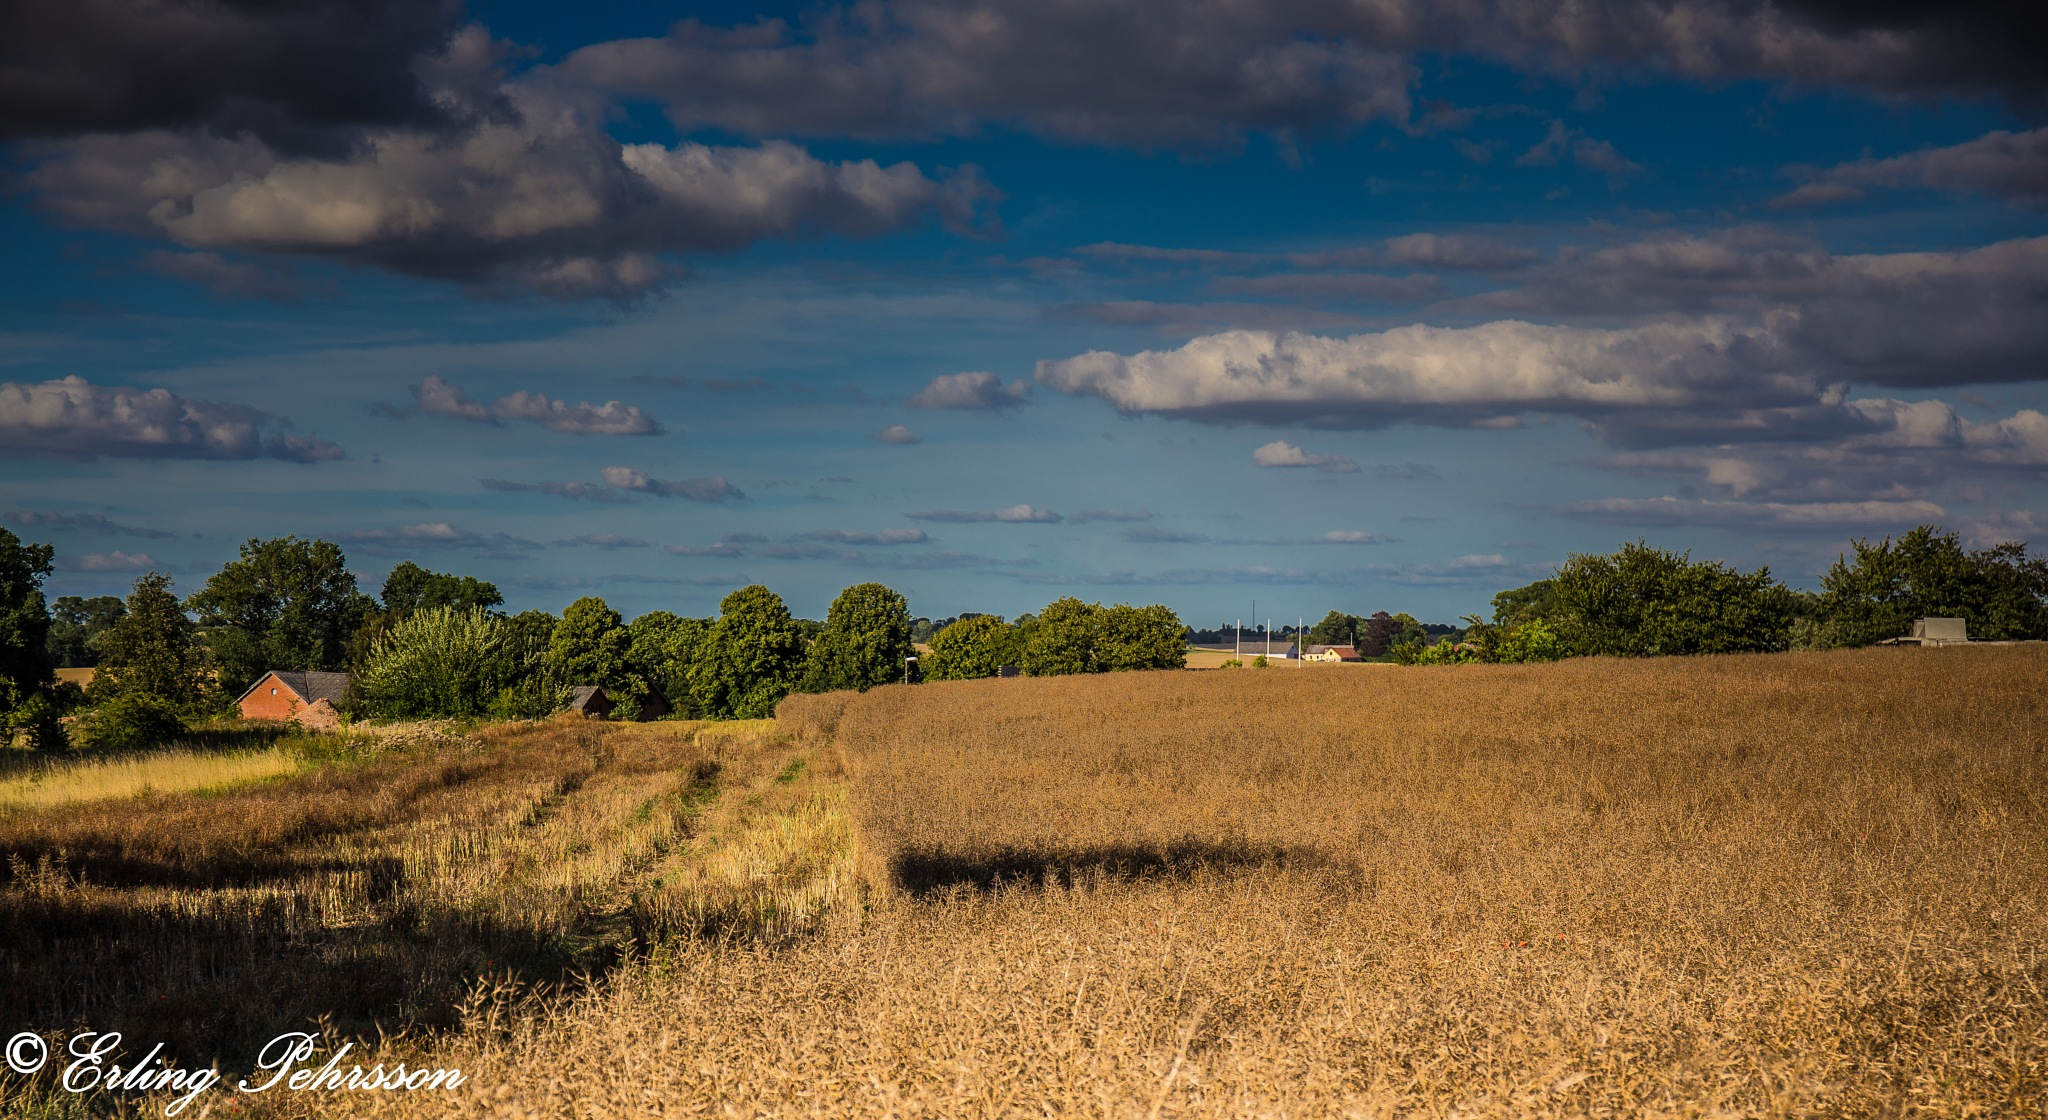 A cornfield by erling.pehrsson